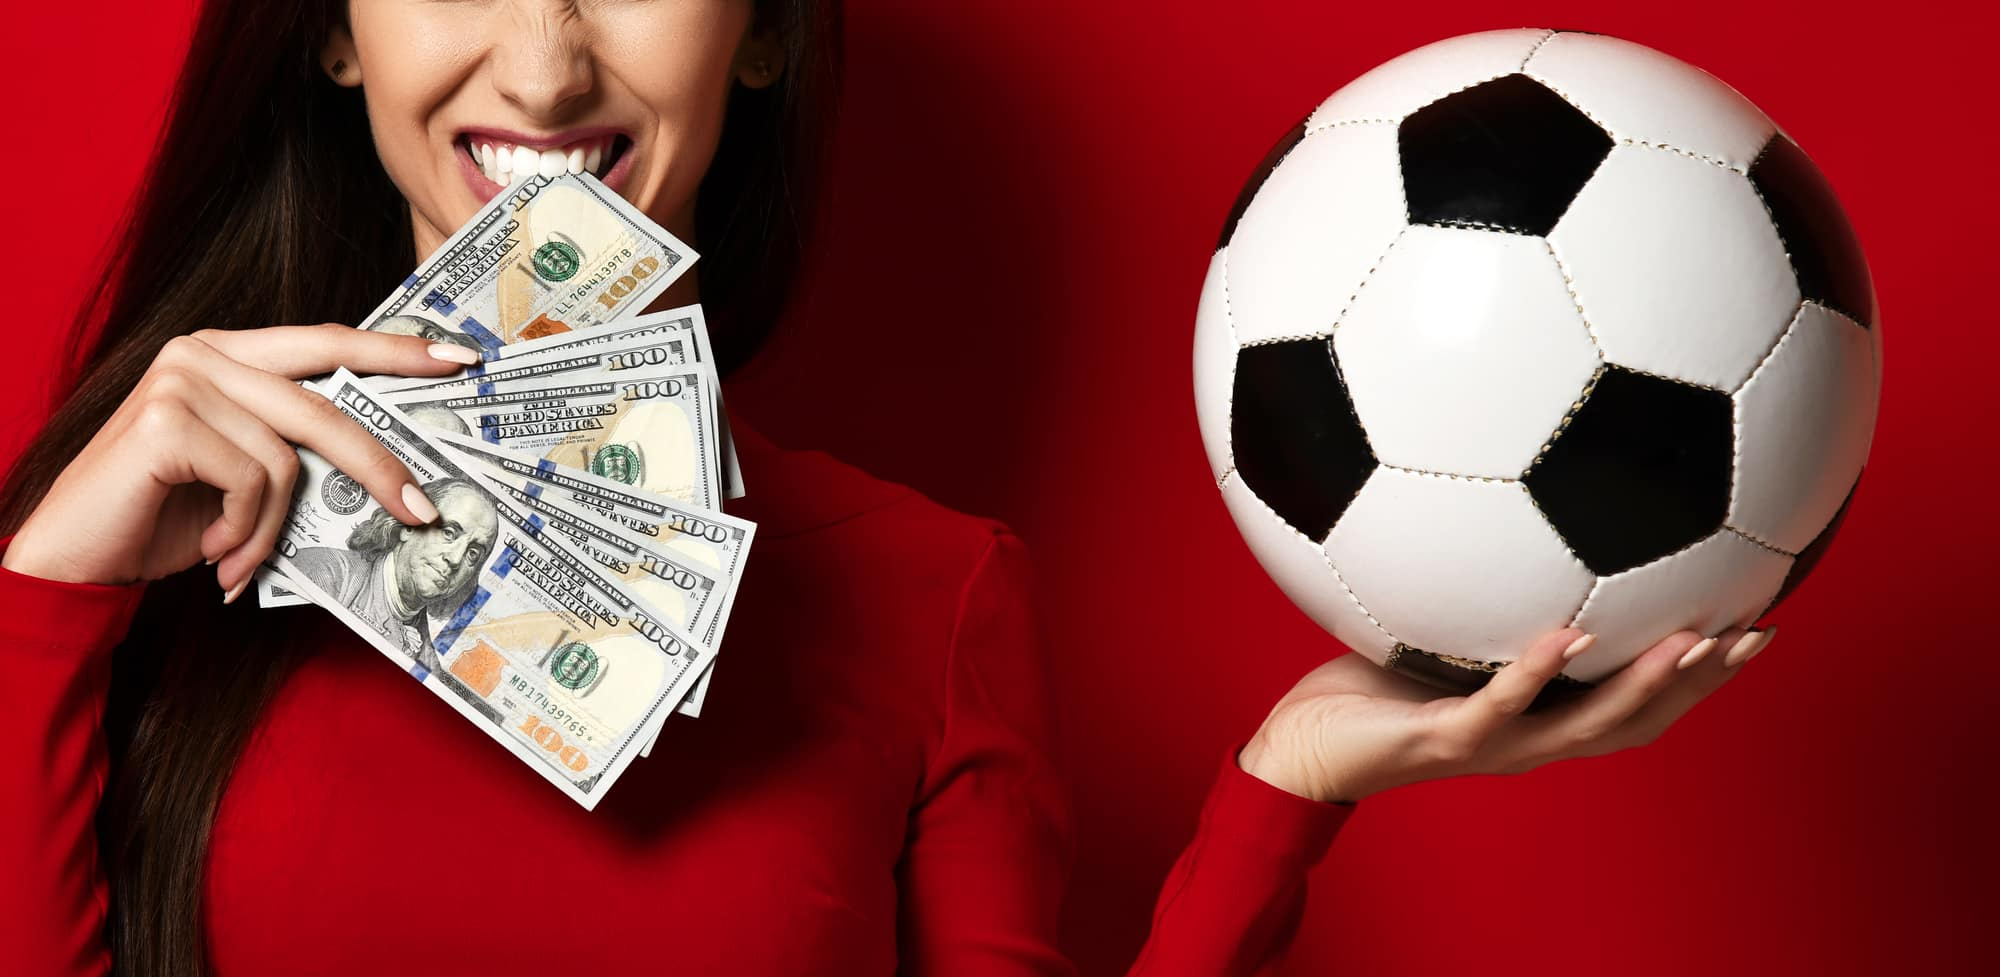 What are the advantages of live betting sites?